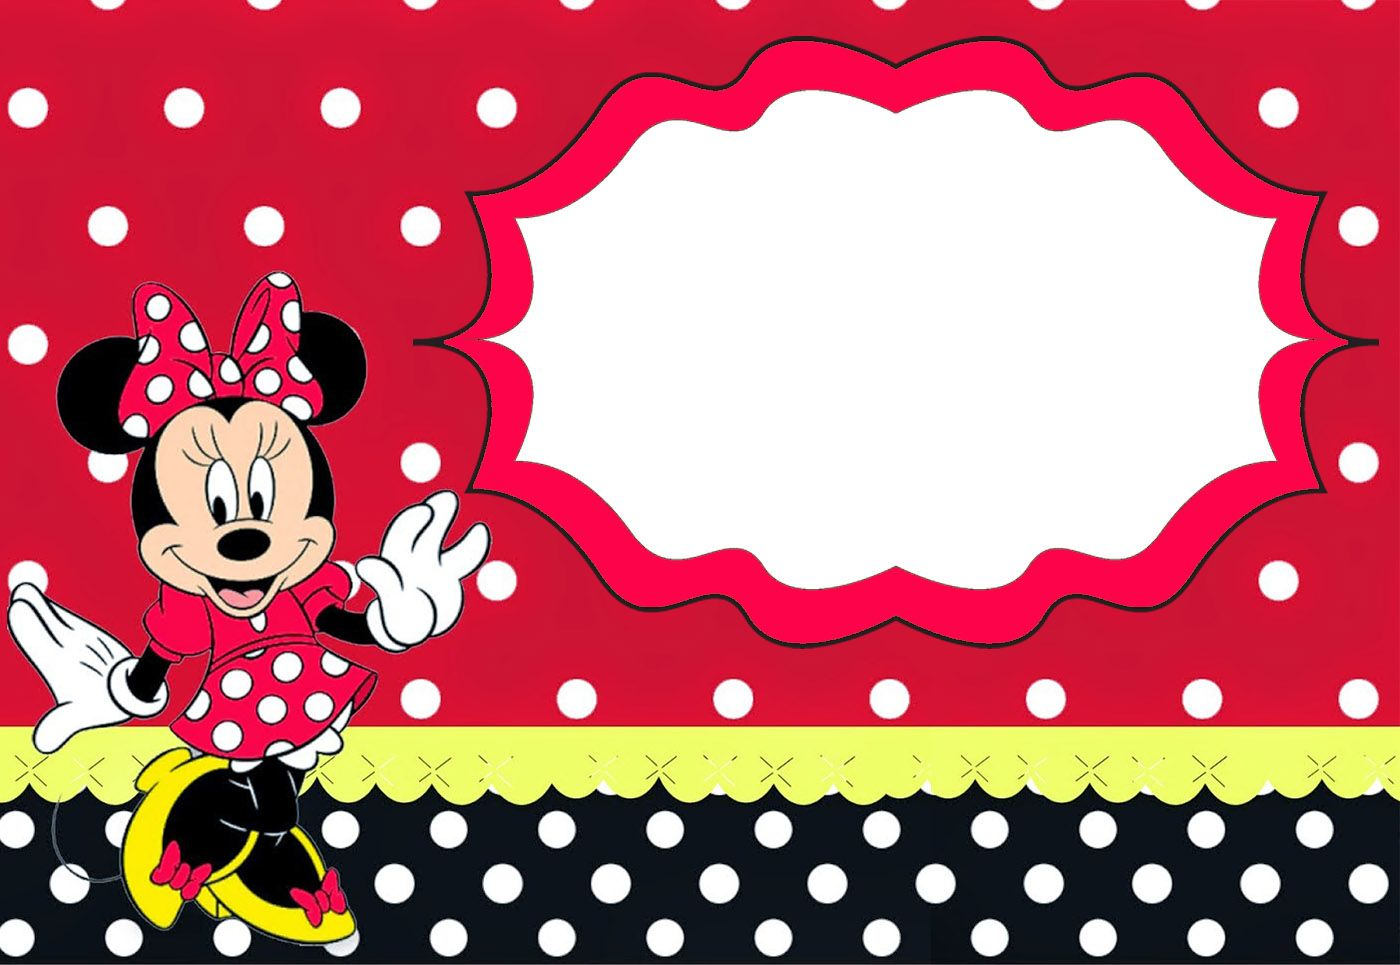 Minnie Mouse Birthday Party Invitation Template Minnie Mouse Invitations Minnie Mouse Birthday Invitations Minnie Mouse Birthday